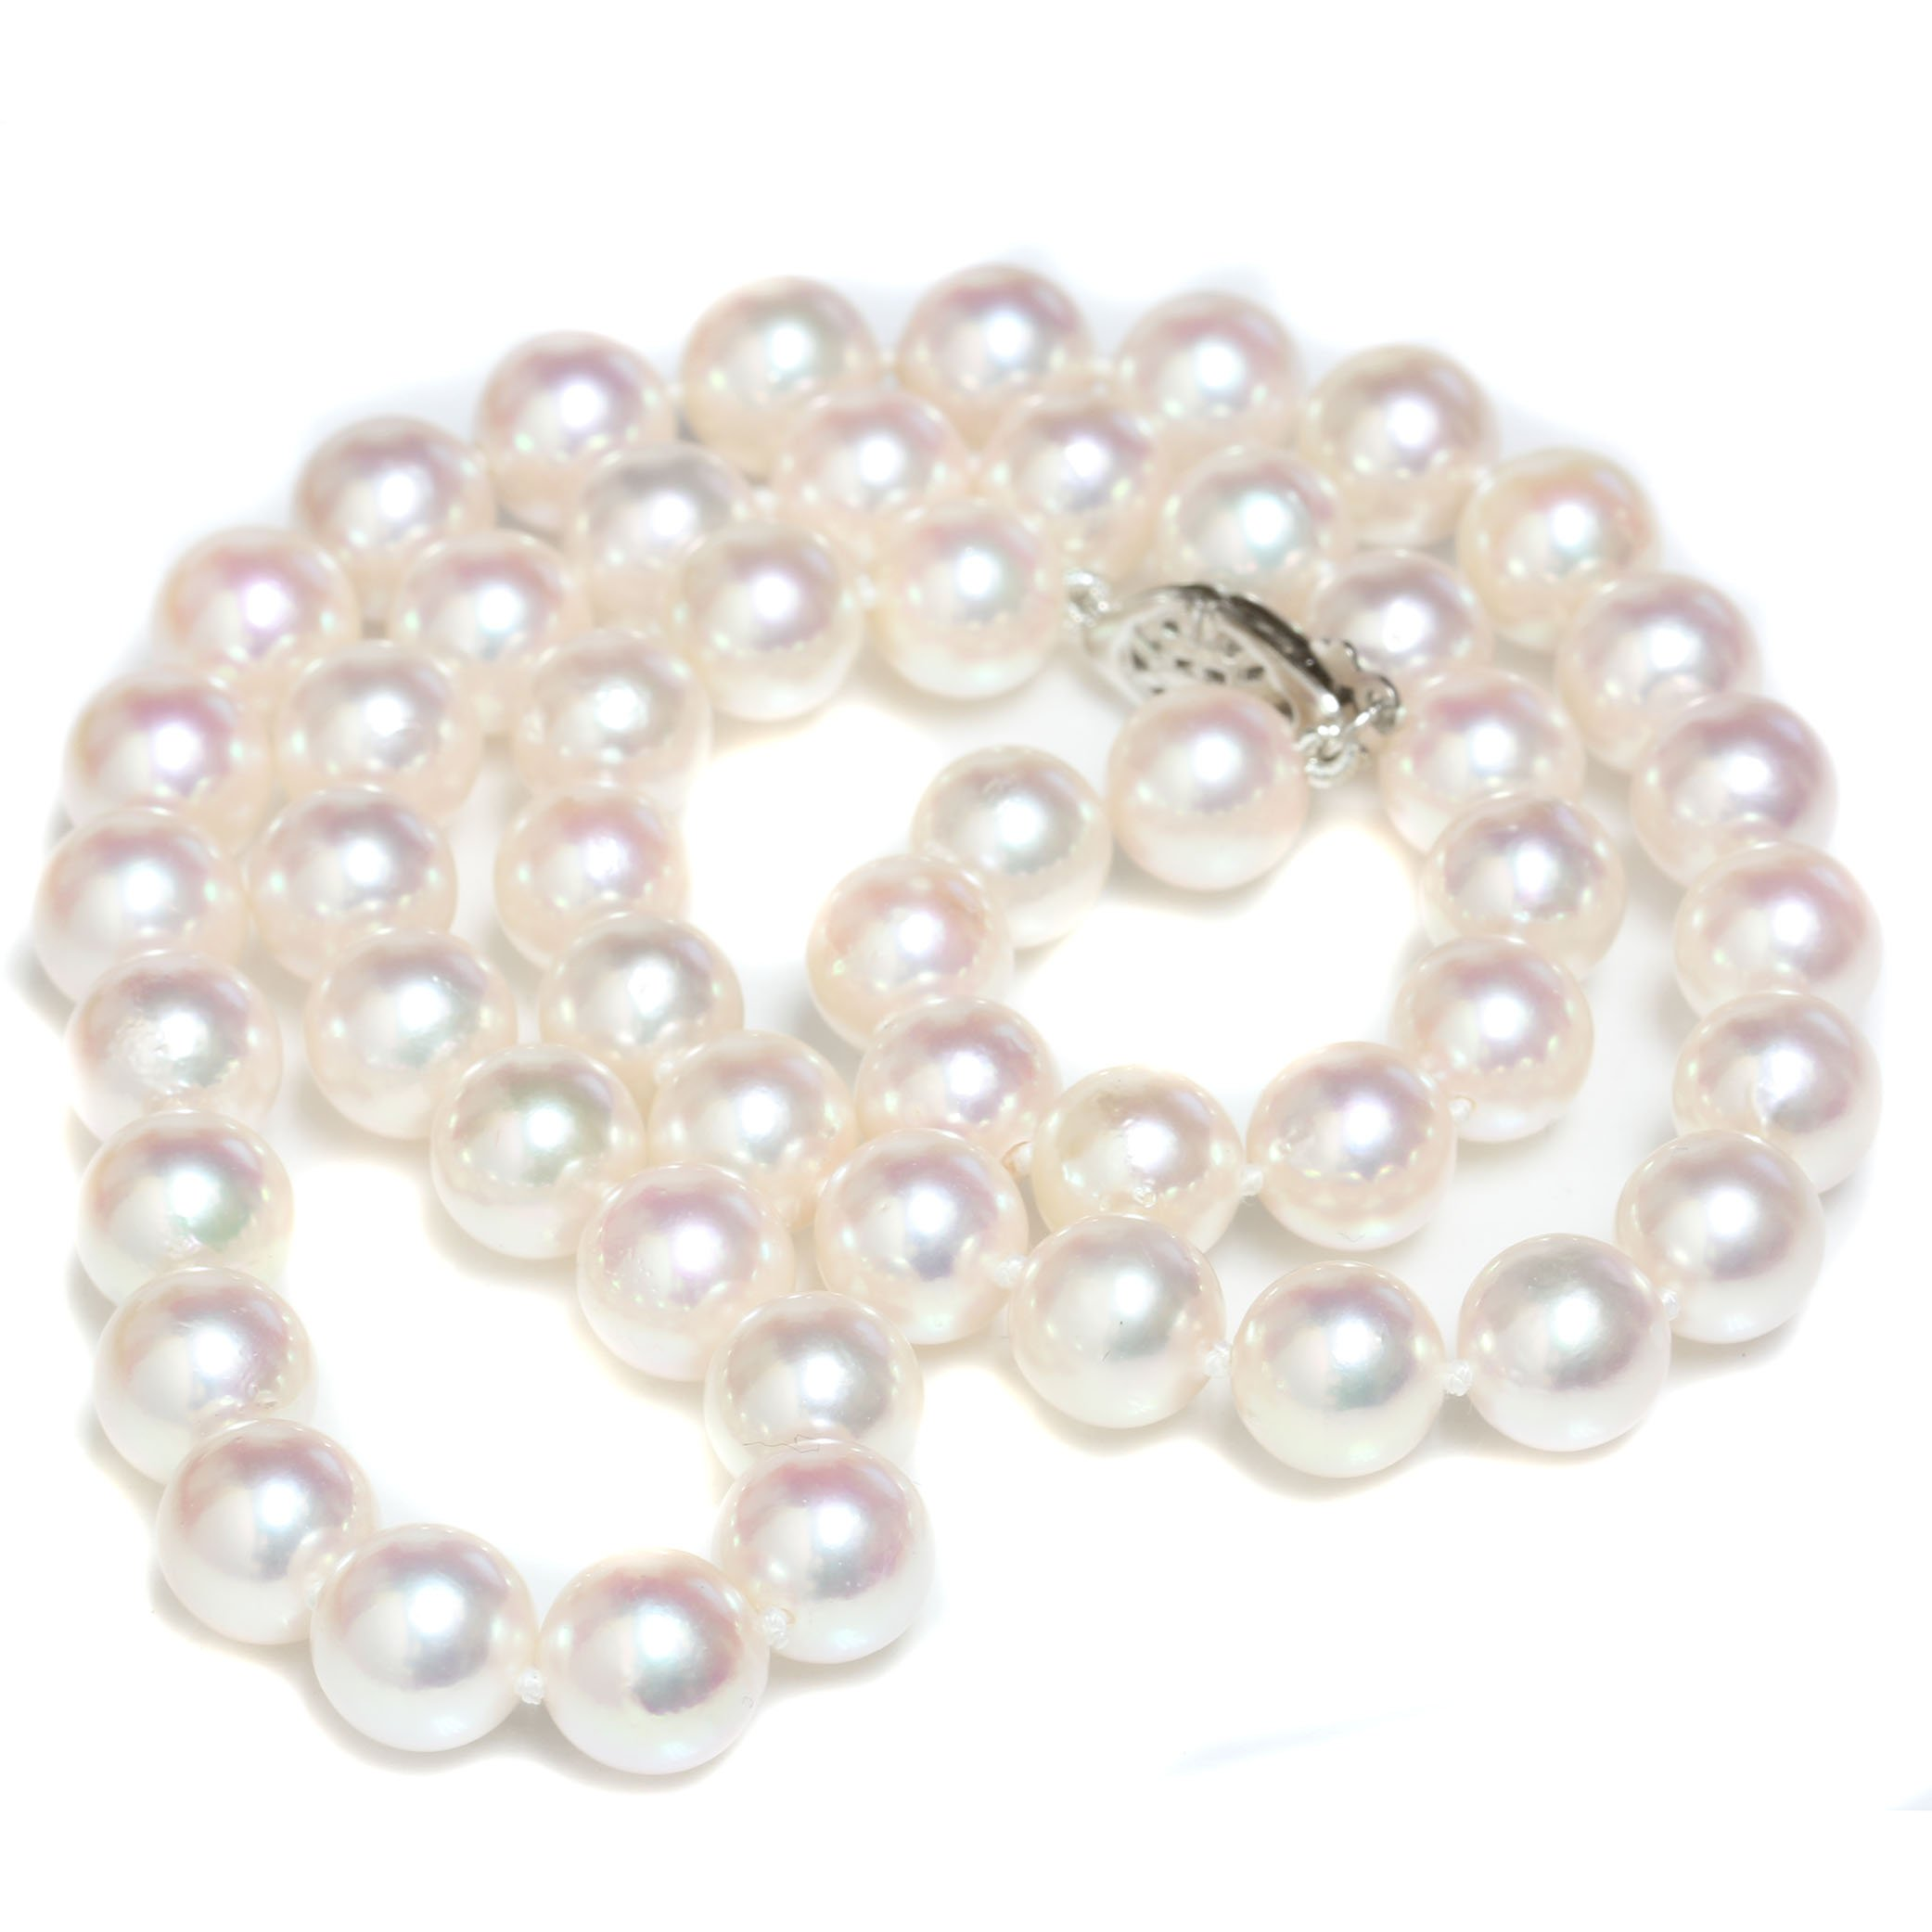 Cultured Akoya Pearl Necklace 8 - 7.5 MM AAA Quality 14k Solid White Gold Clasp 18''